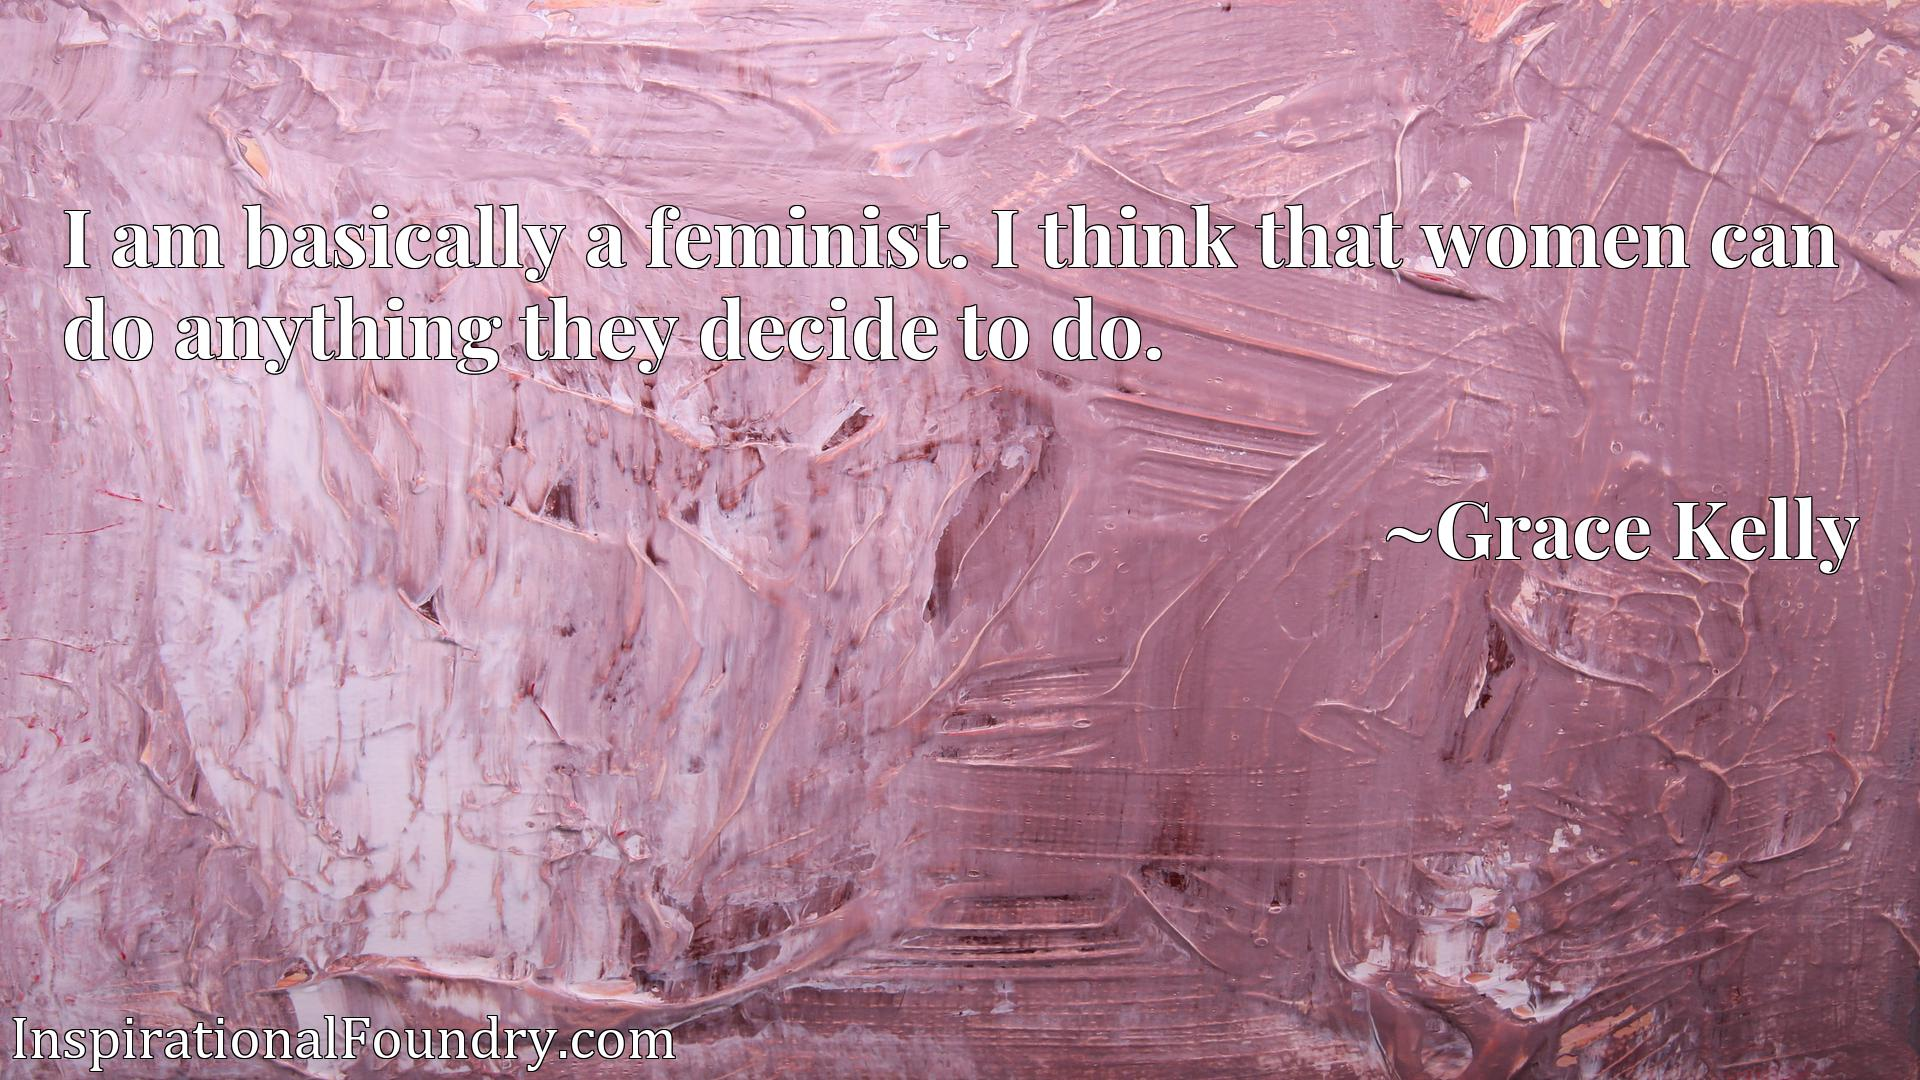 I am basically a feminist. I think that women can do anything they decide to do.